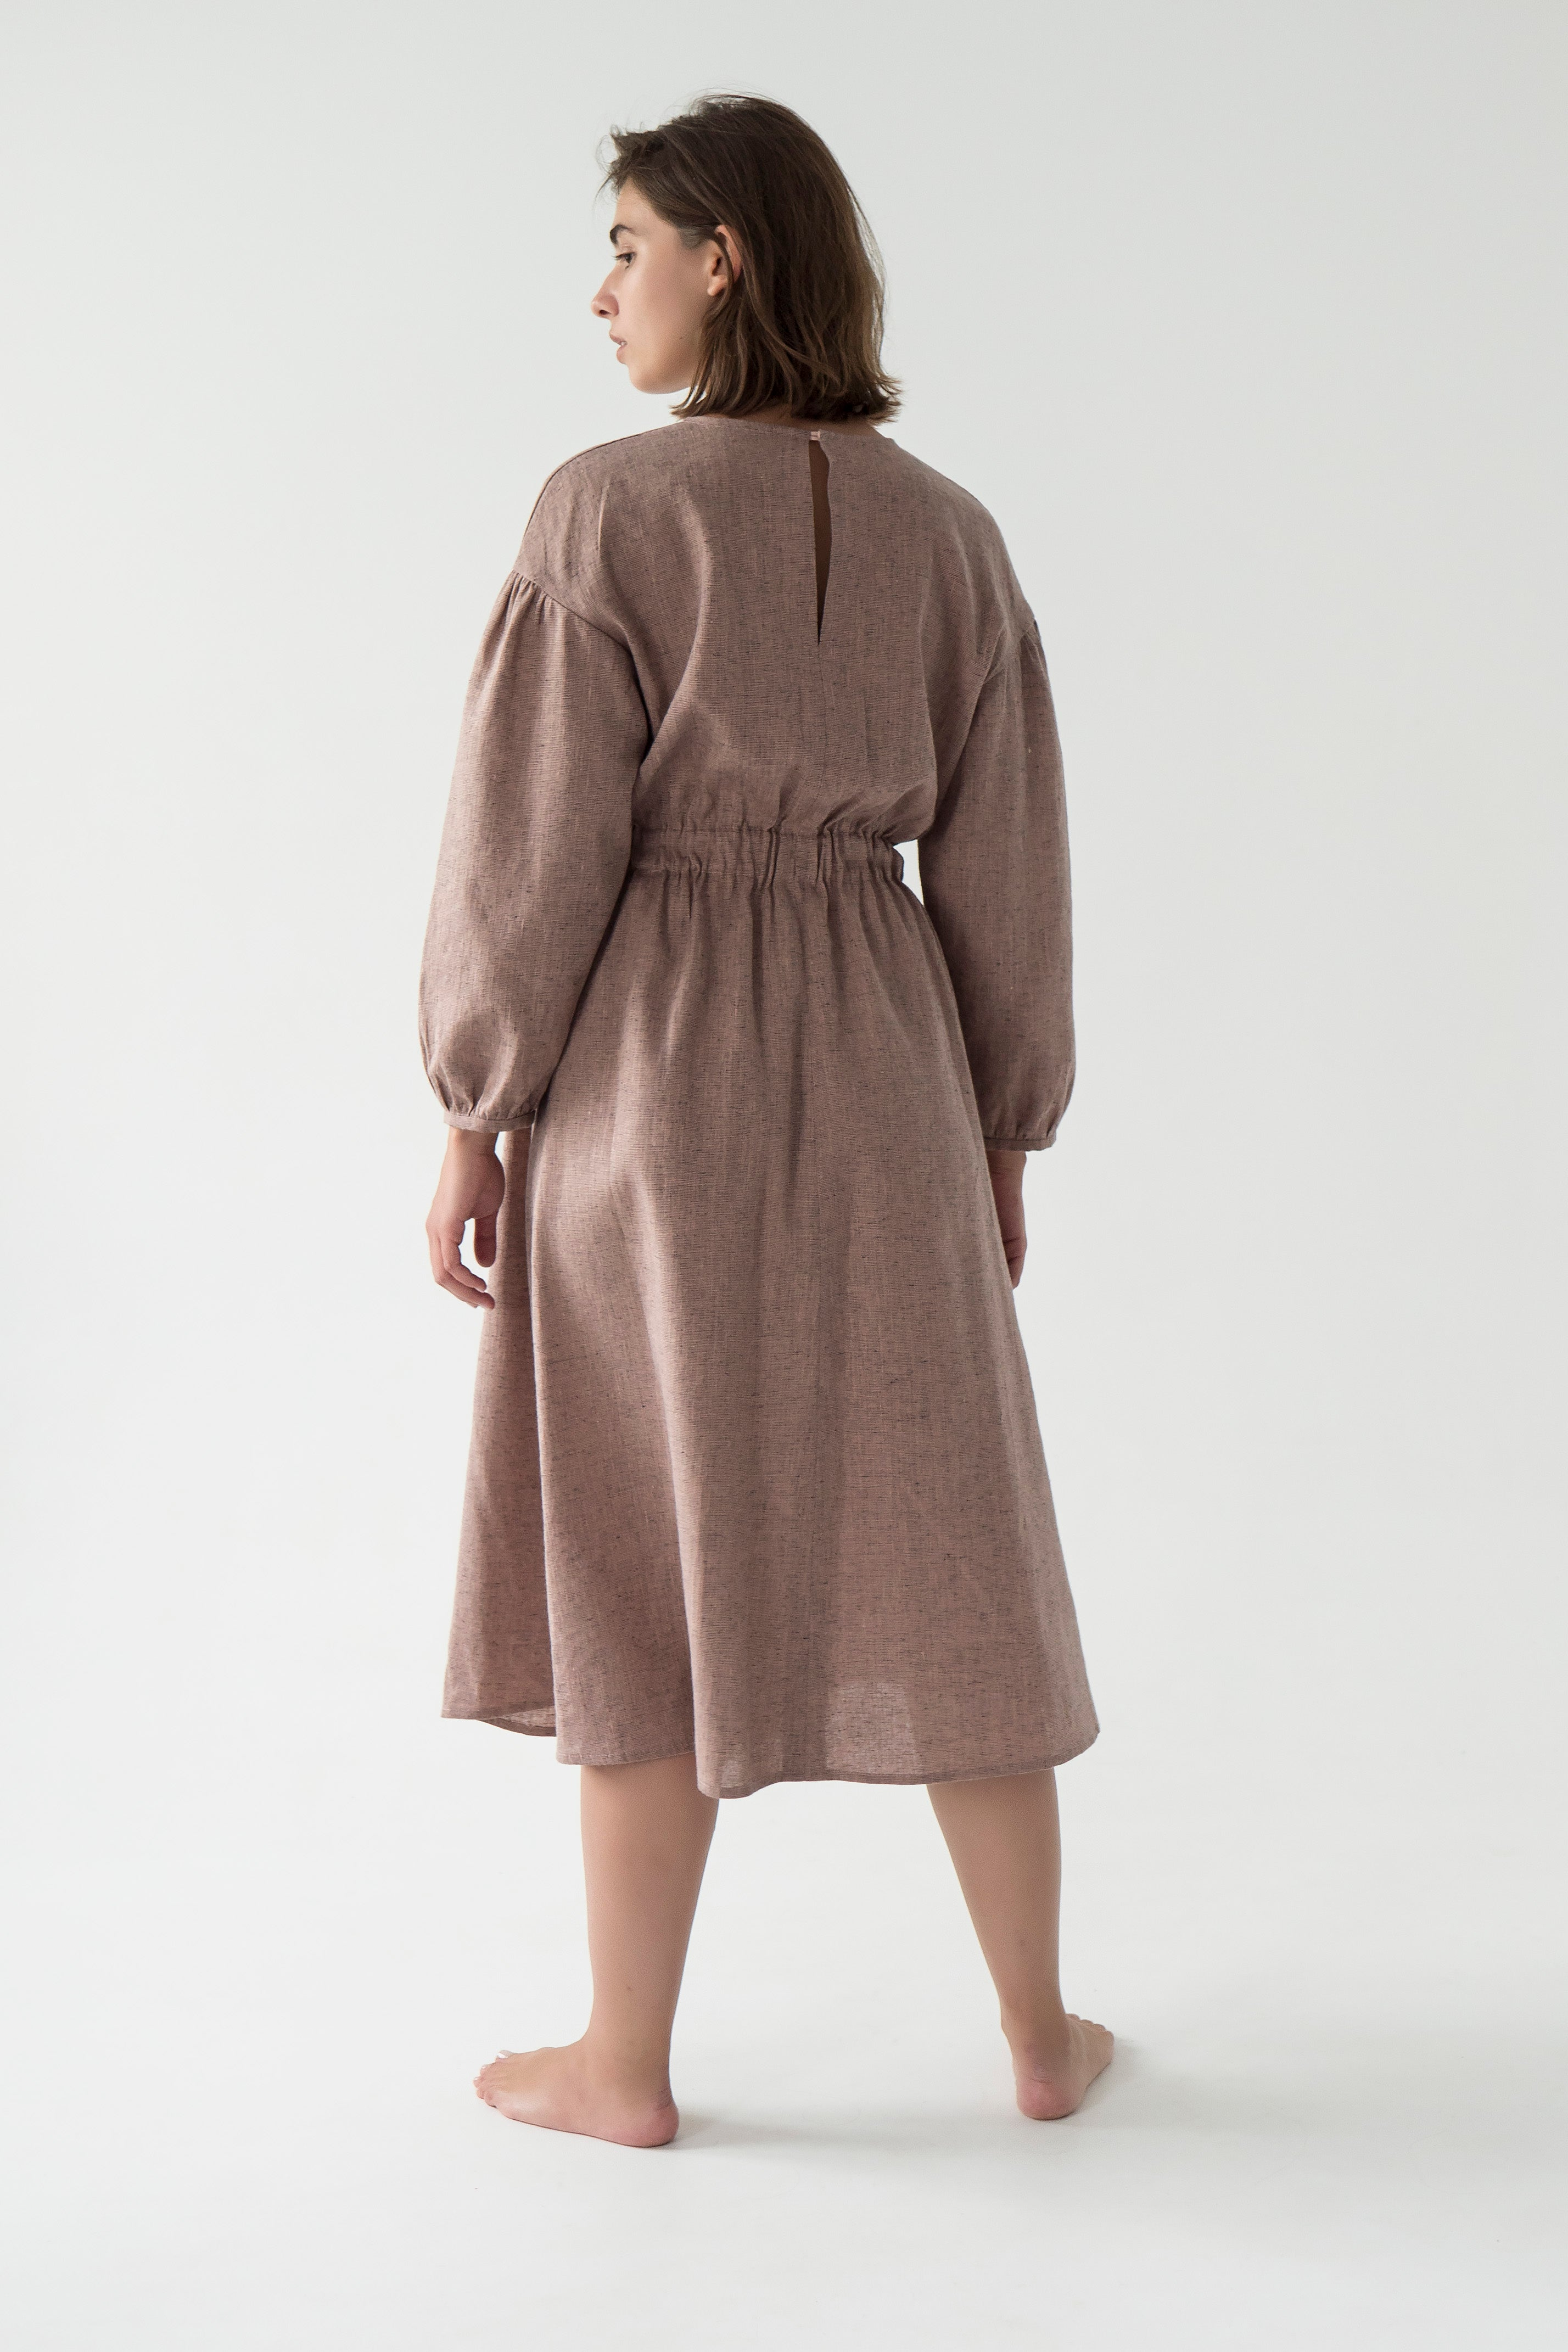 linen midi dress in vintage style